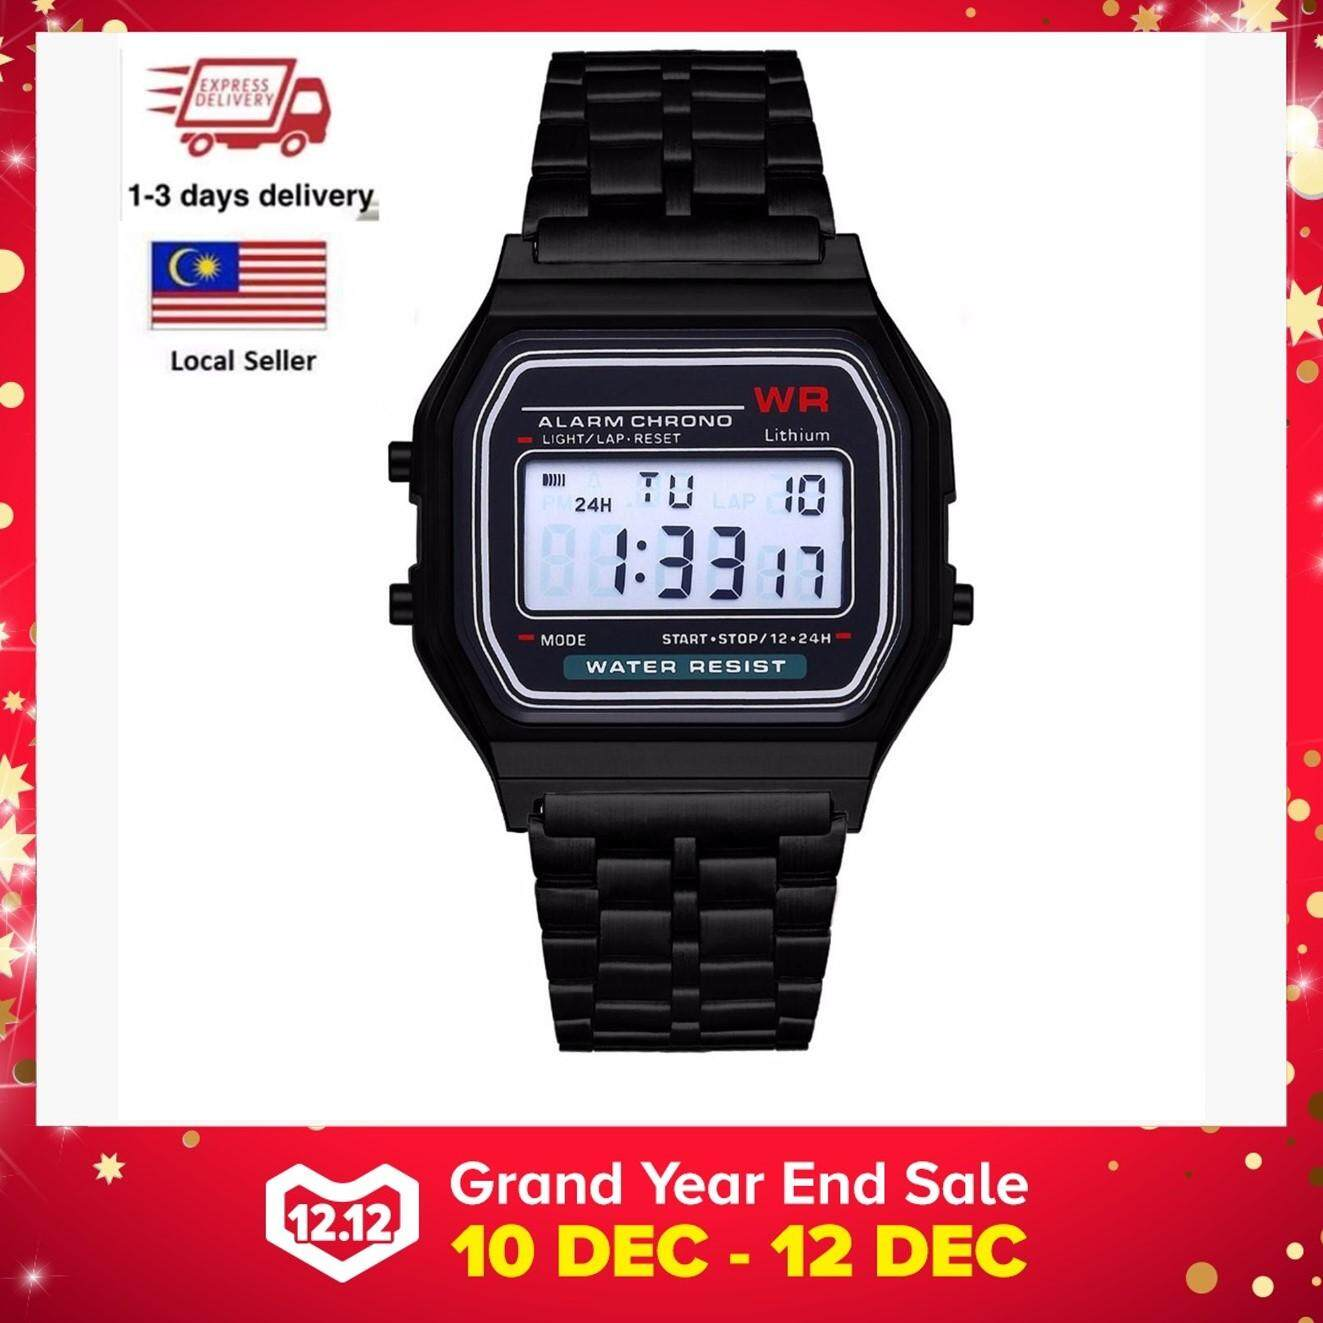 Women Fashion Watches With Best Price At Lazada Malaysia Jam Tangan Swatch Original 100  Yes4008 Go Red Black Ampamp Sports